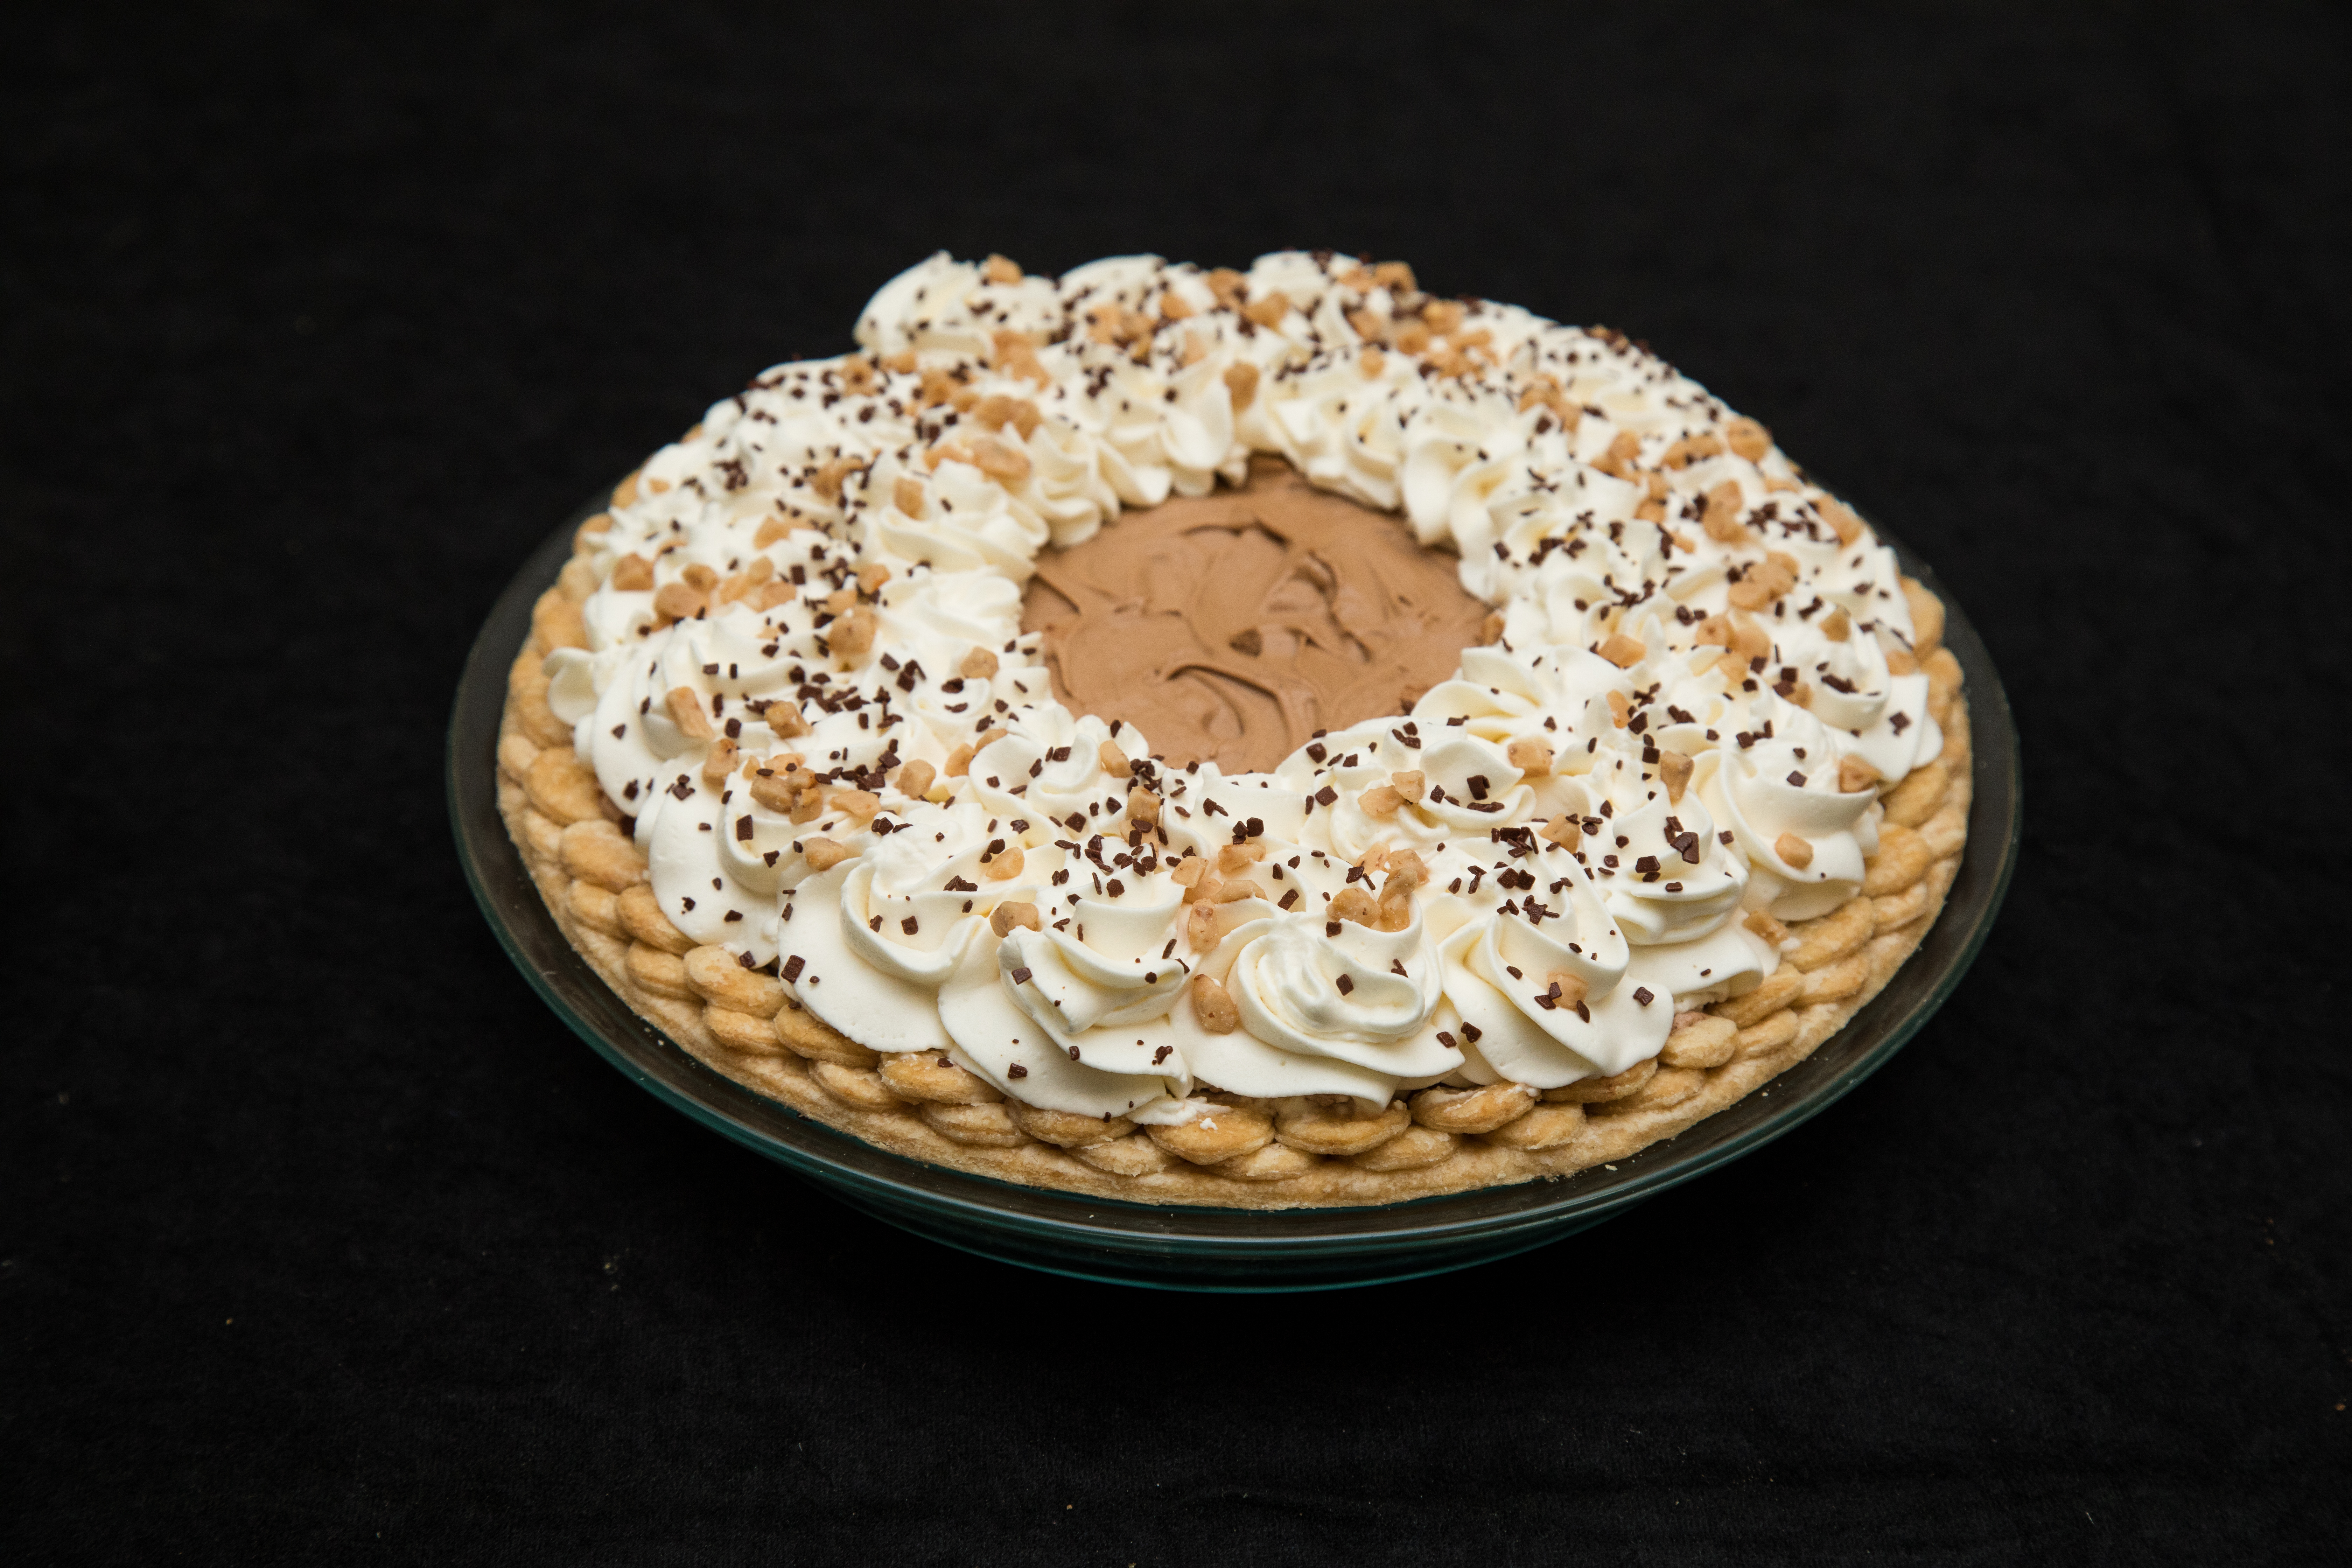 2019 1st Place Amateur Cream, Chocolate Chiffon Freckled Bottomed Pie, Rhonda Hull, Little Rock, AR